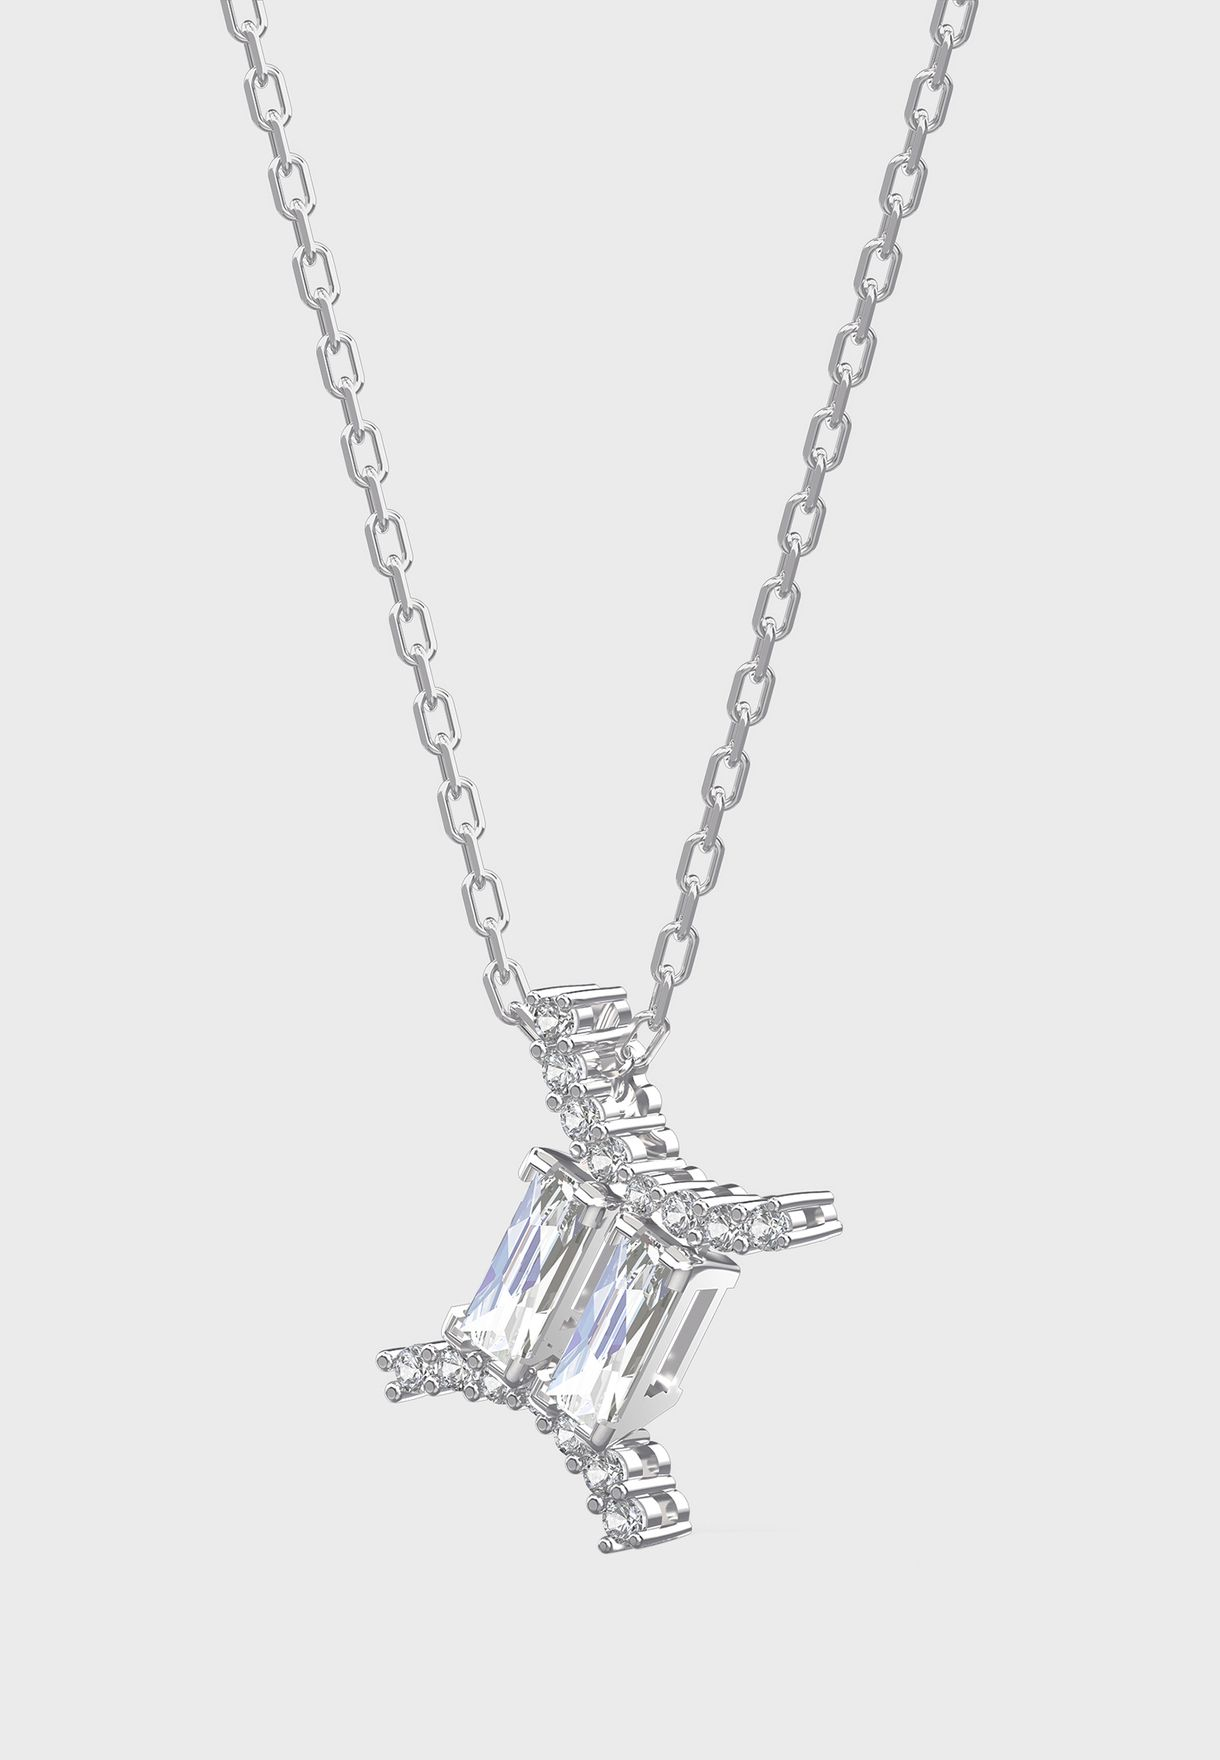 Zodiac Gemini Pendant Necklace